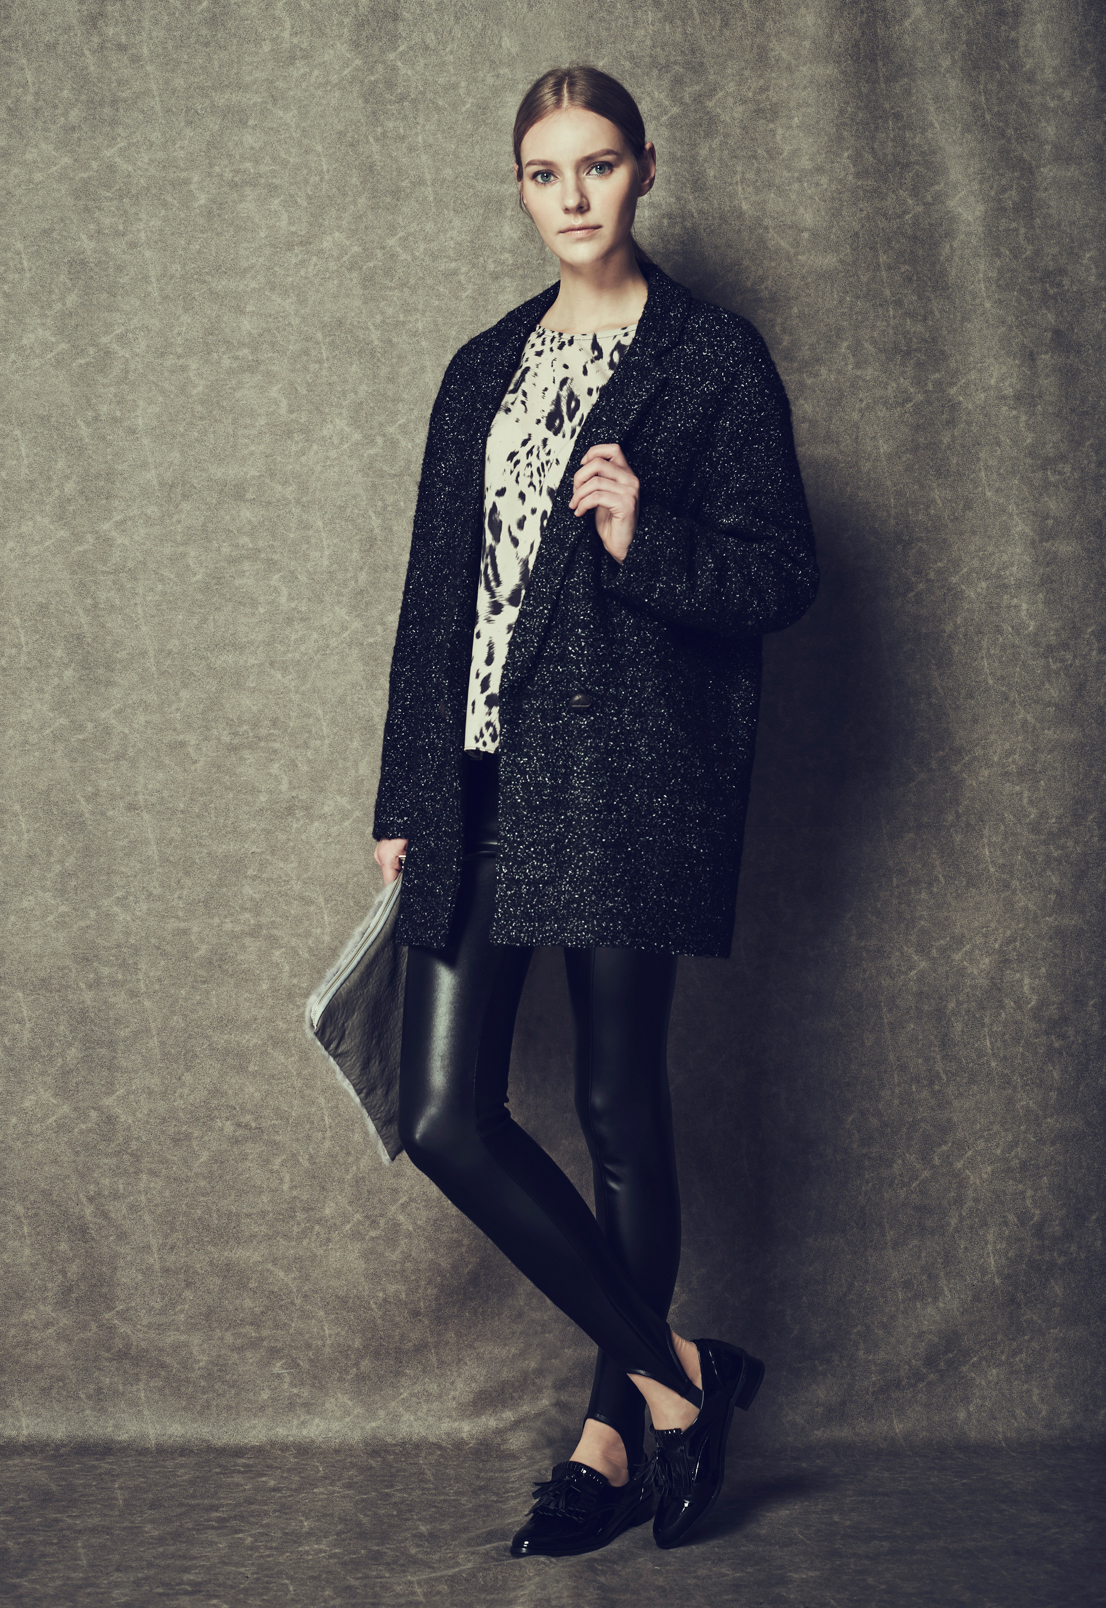 Oversized Boucle Coat & Leopard Print Blouse & Glimmer Stirrup Leggings